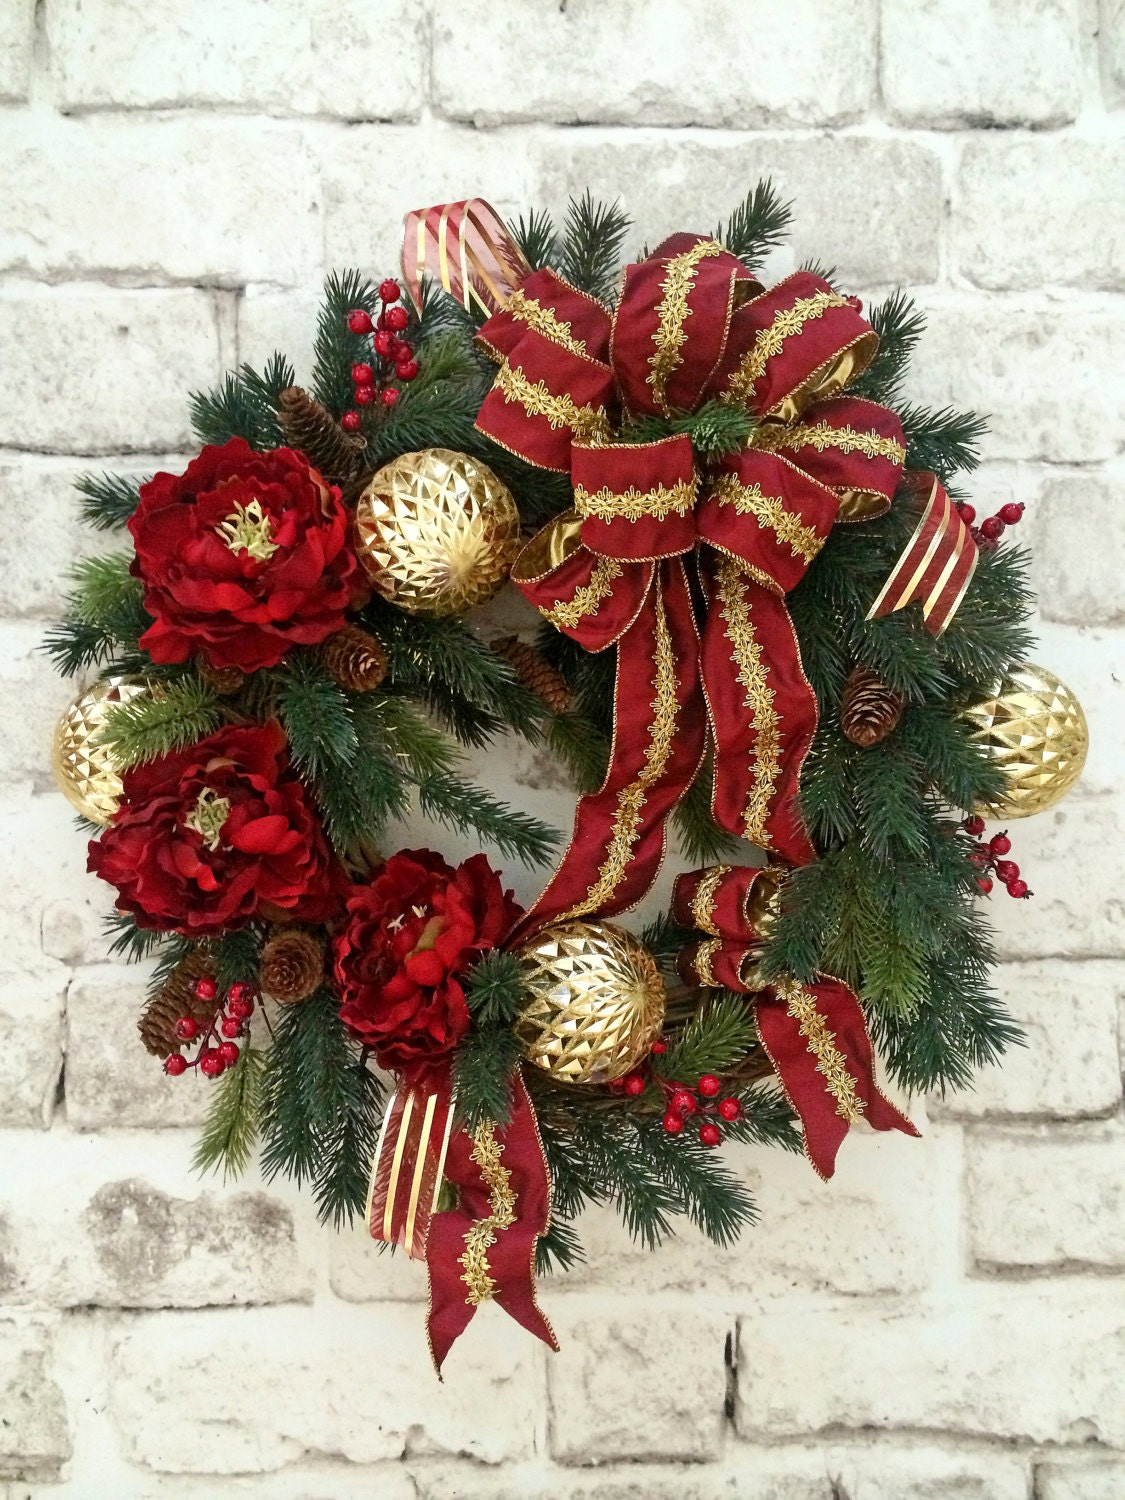 Christmas Wreath Holiday Wreath Christmas Decor Outdoor: christmas wreath decorations